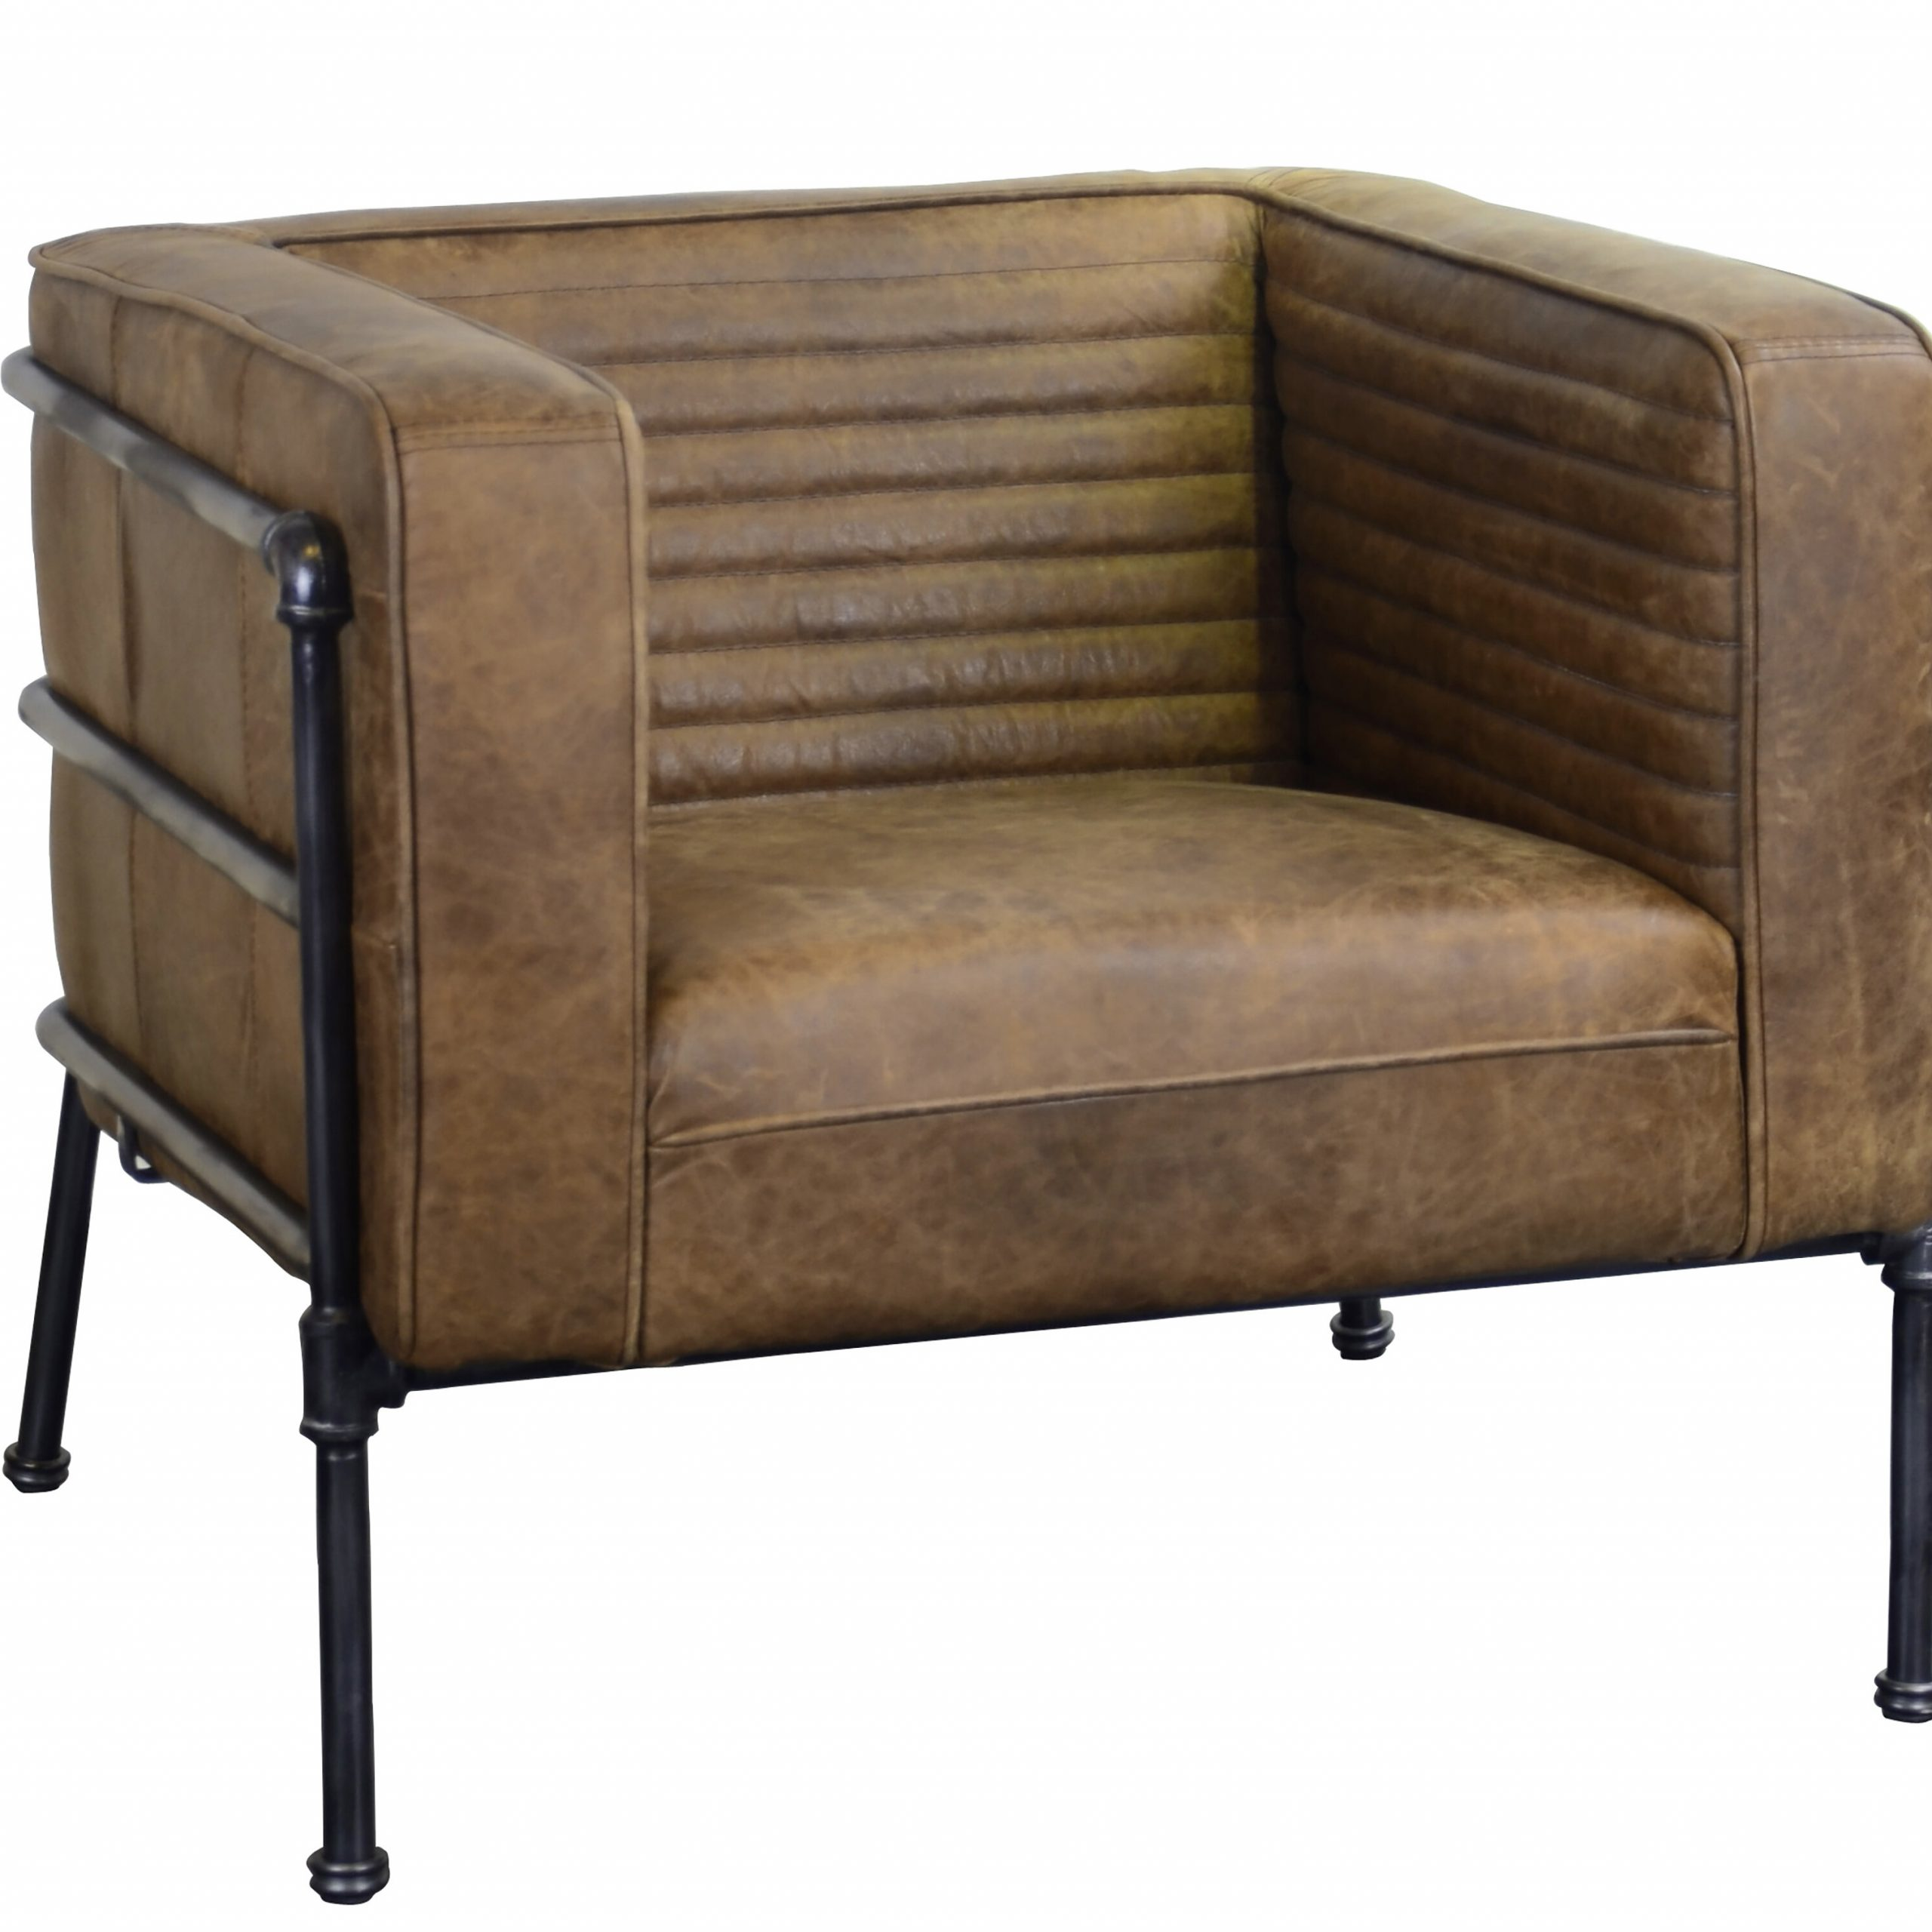 "Shearer 31"" W Tufted Top Grain Leather Club Chair In Sheldon Tufted Top Grain Leather Club Chairs (View 2 of 15)"